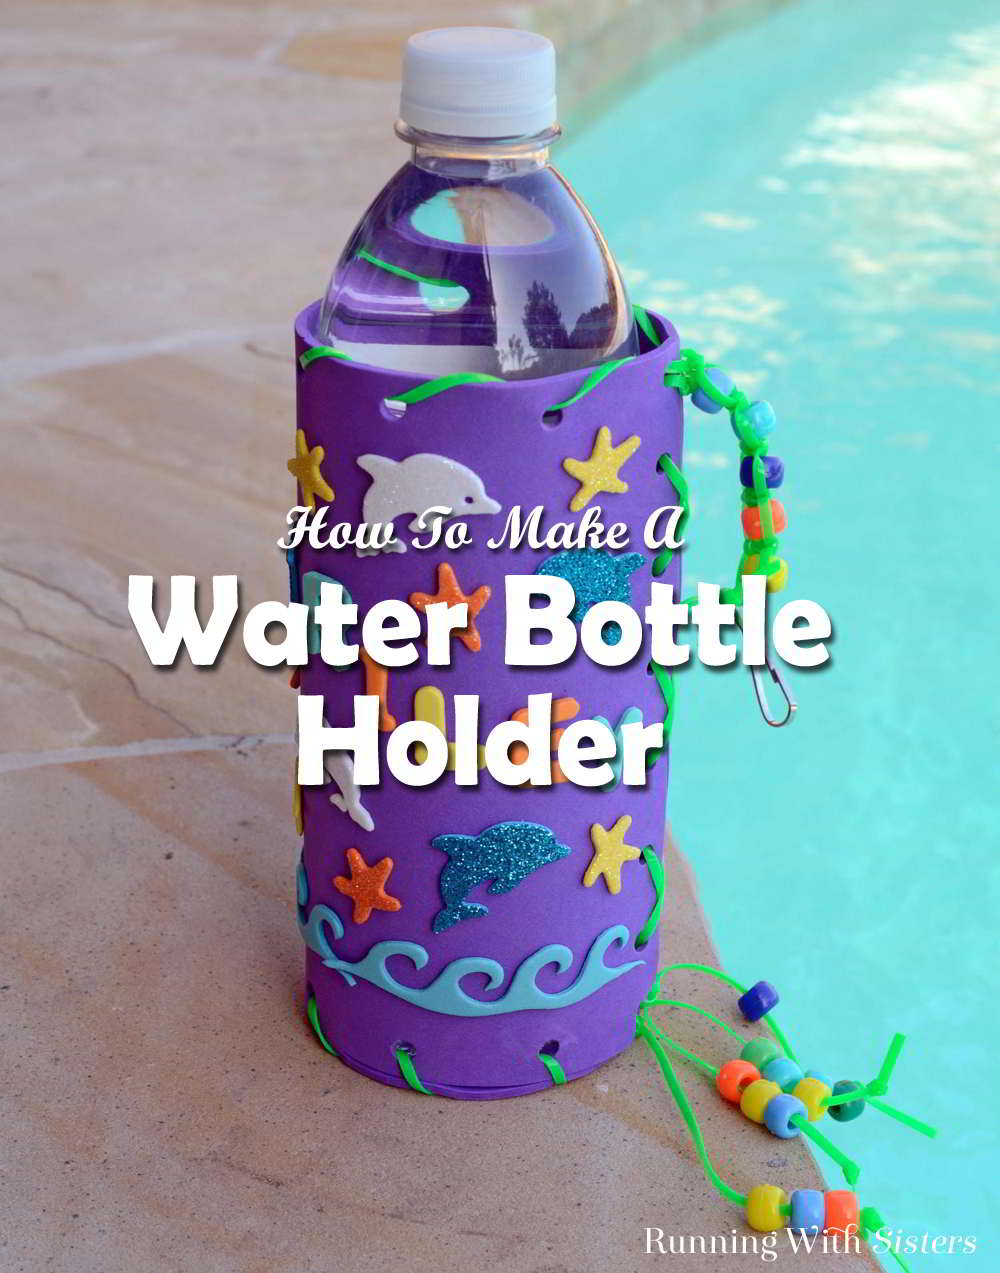 Here's a fun kid craft! Make a clever water bottle holder then decorate it with your name and creatures from the sea. Here's how to do it!